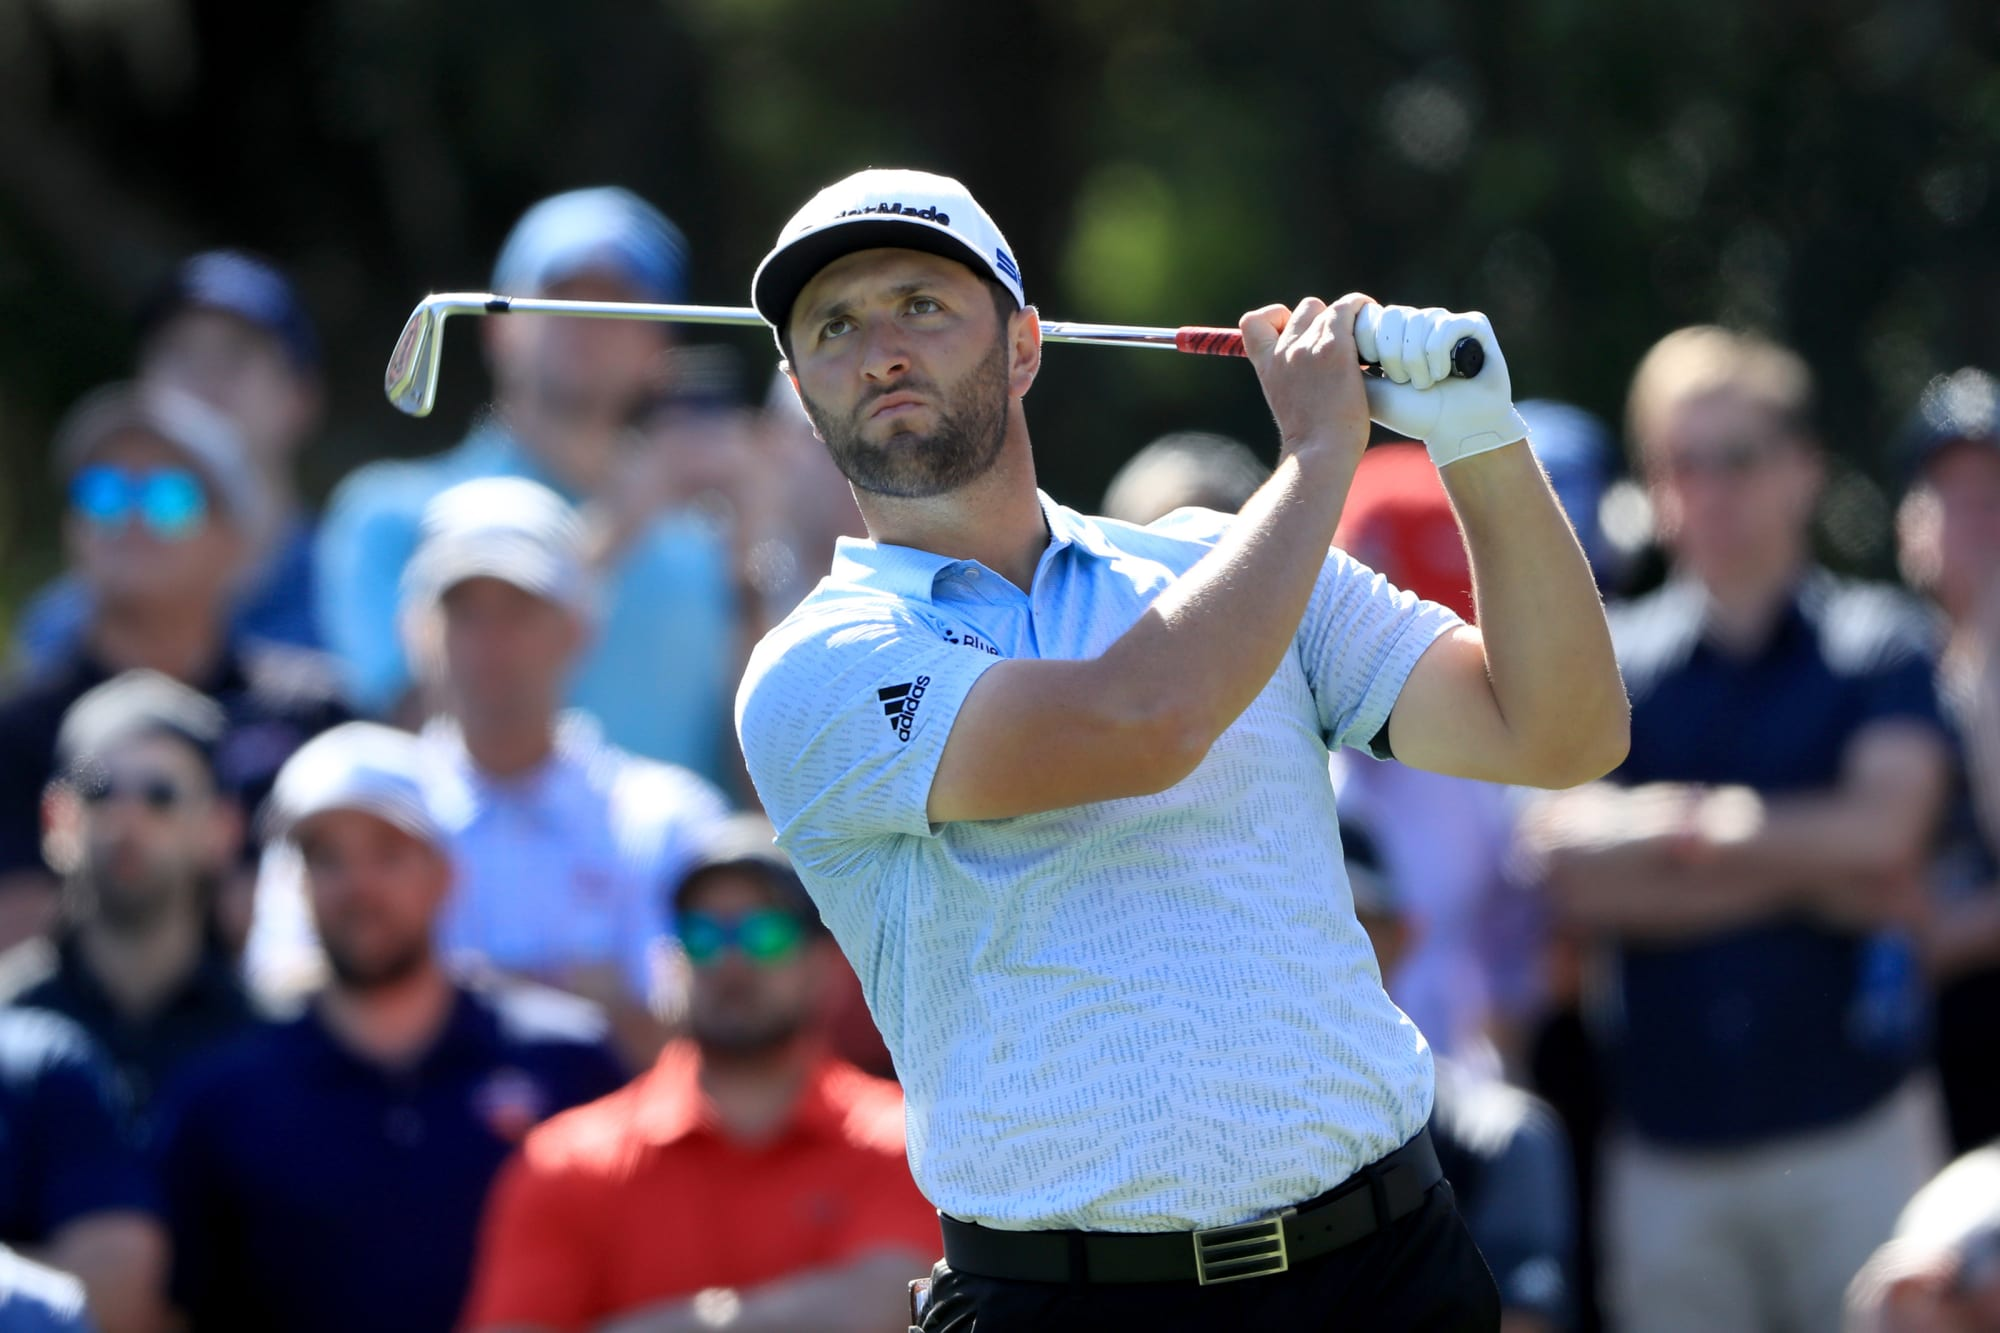 PGA Tour: Charles Schwab Challenge has loaded field